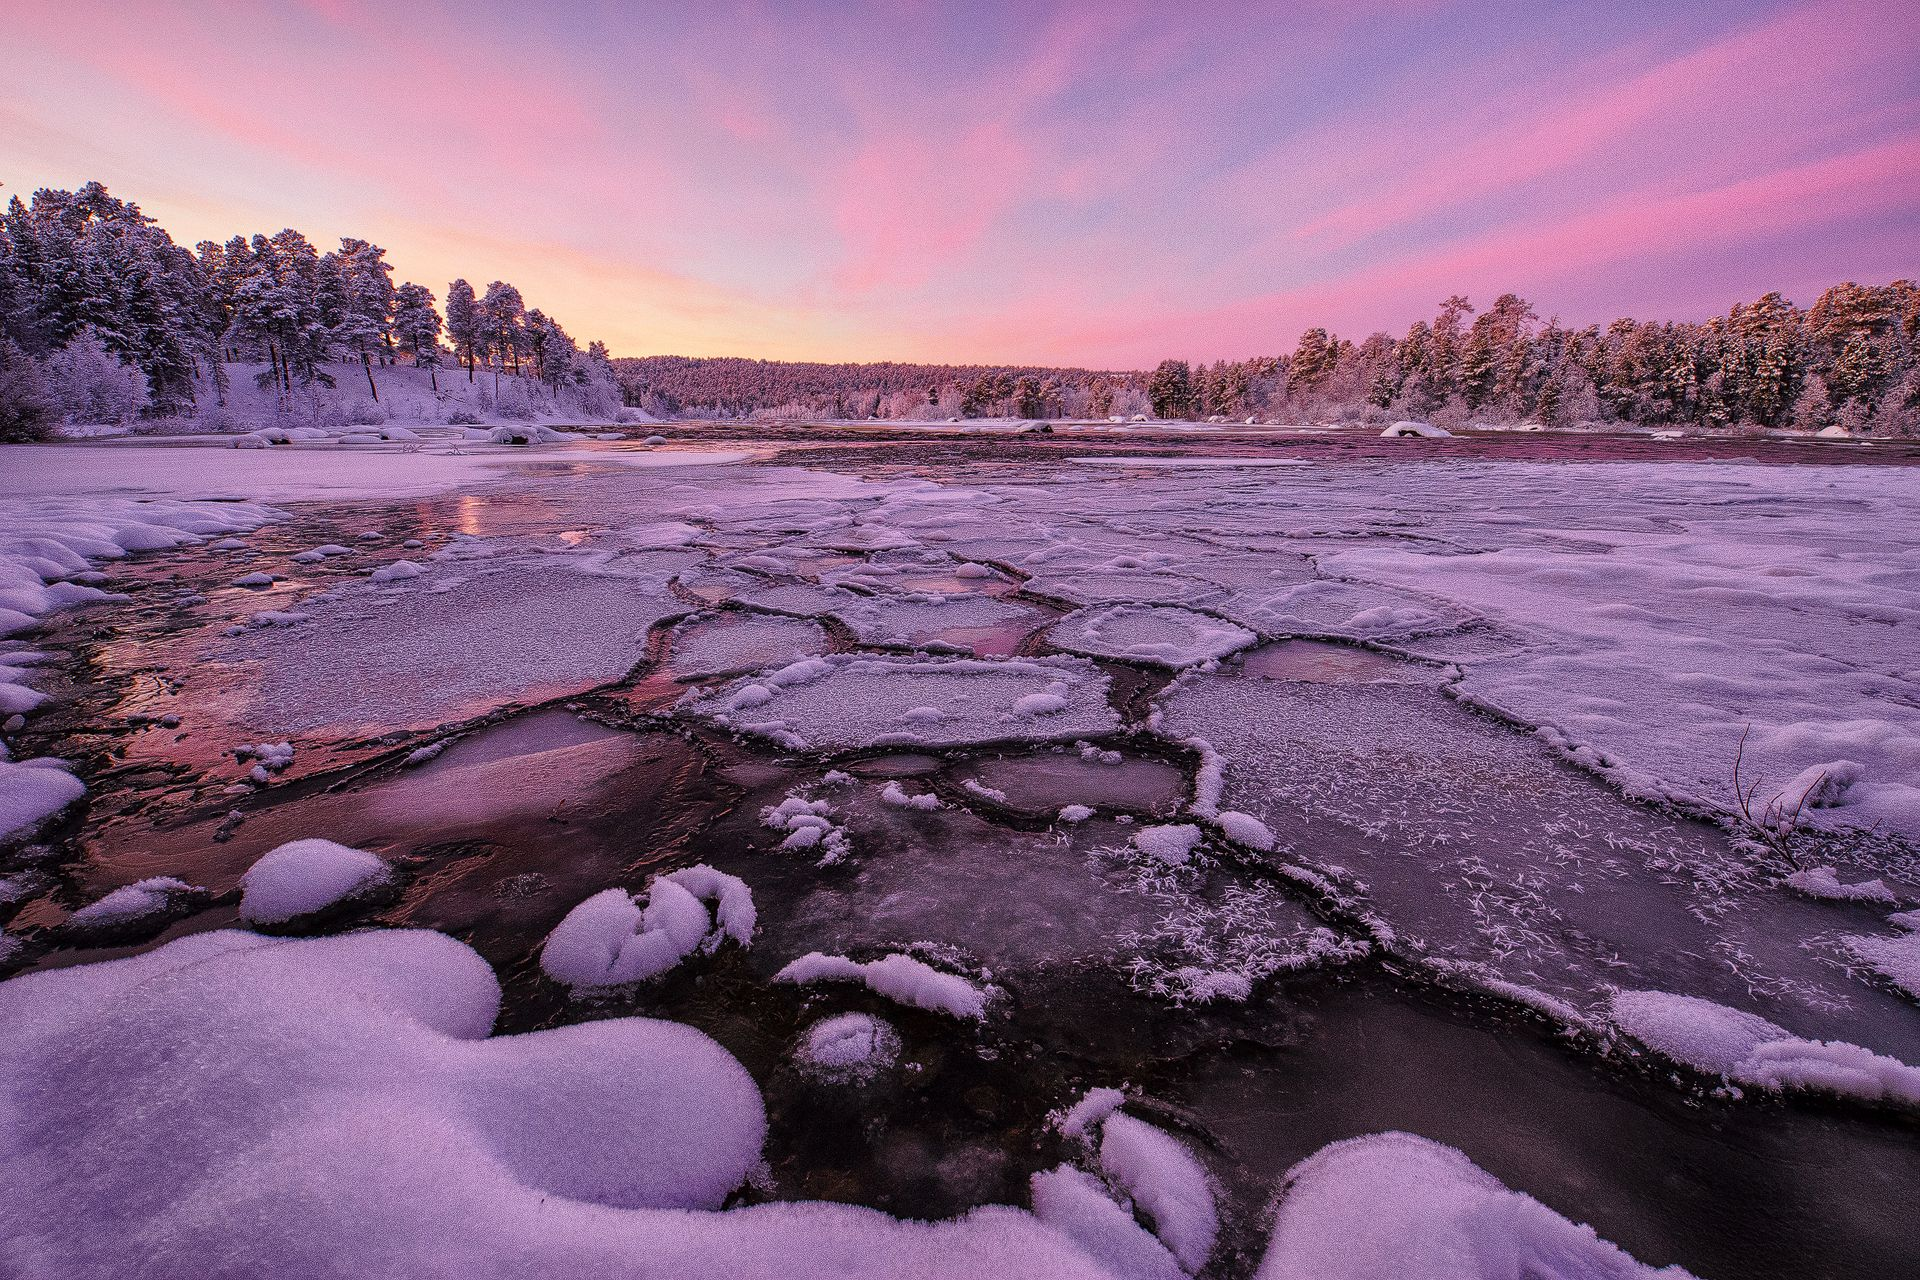 ice river, finland, lapland, finnish lapland, colorful sky, snow, trees, sunset, landscape, winter